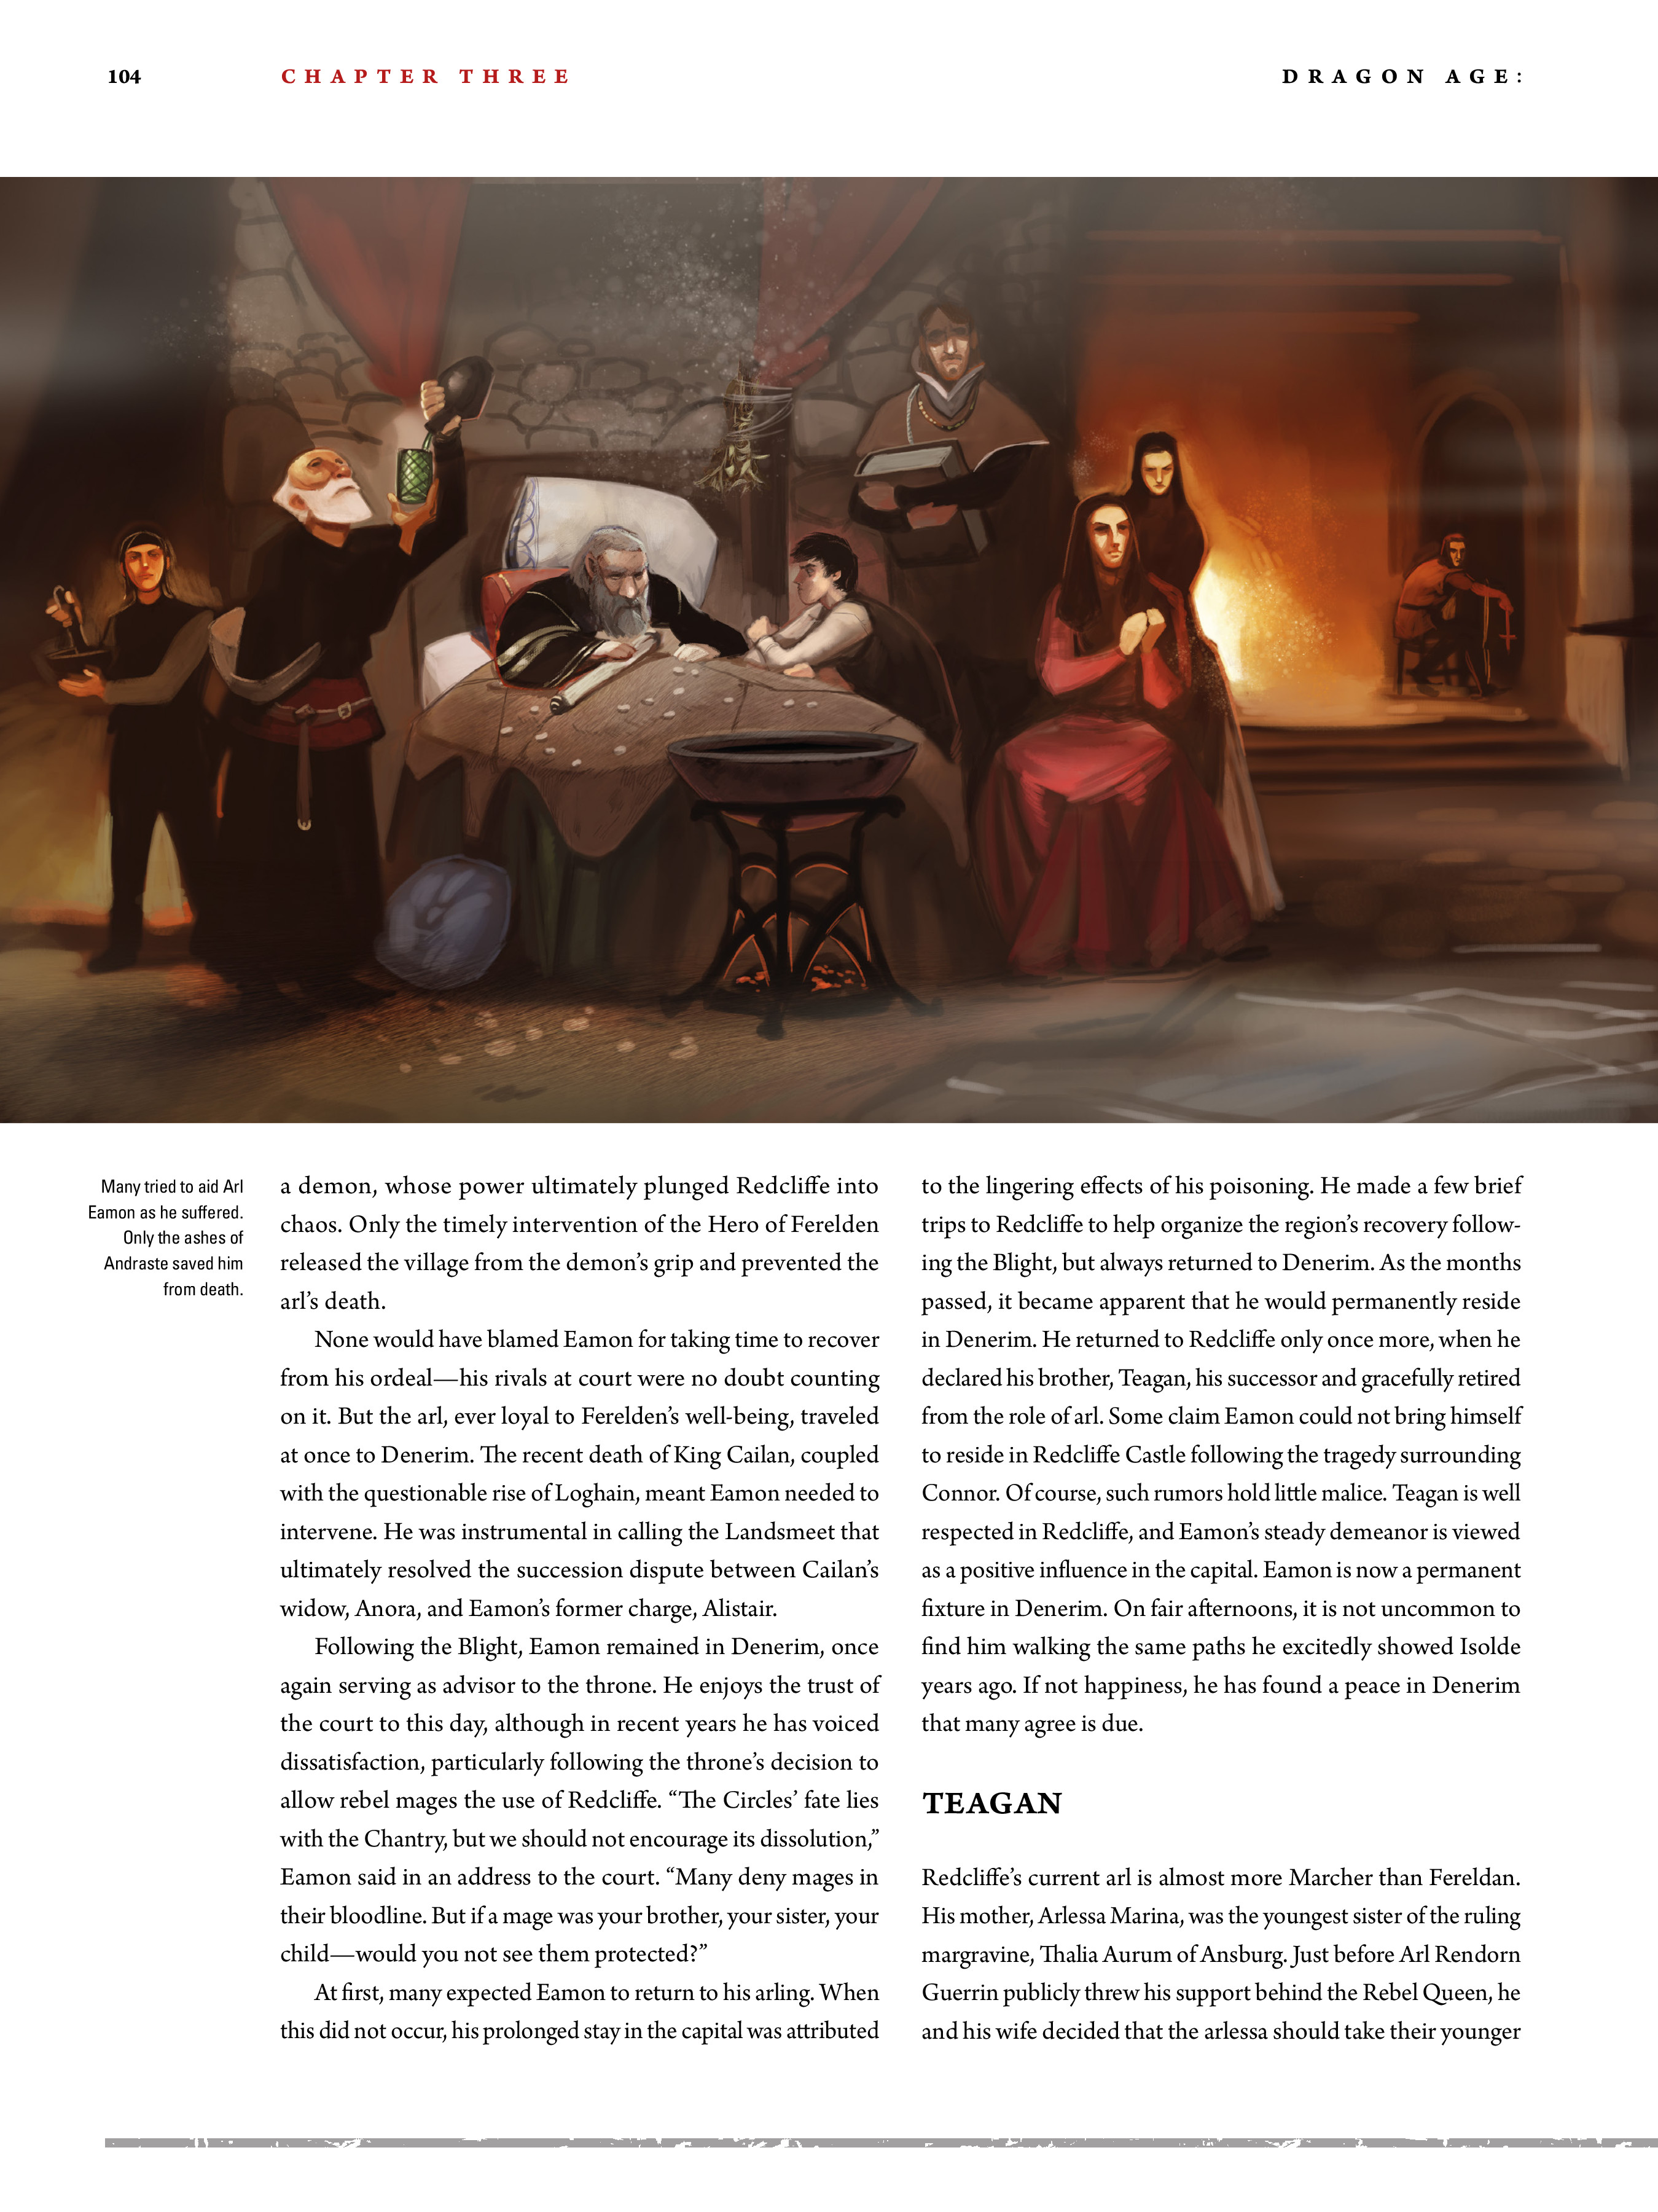 Read online Dragon Age: The World of Thedas comic -  Issue # TPB 2 - 100